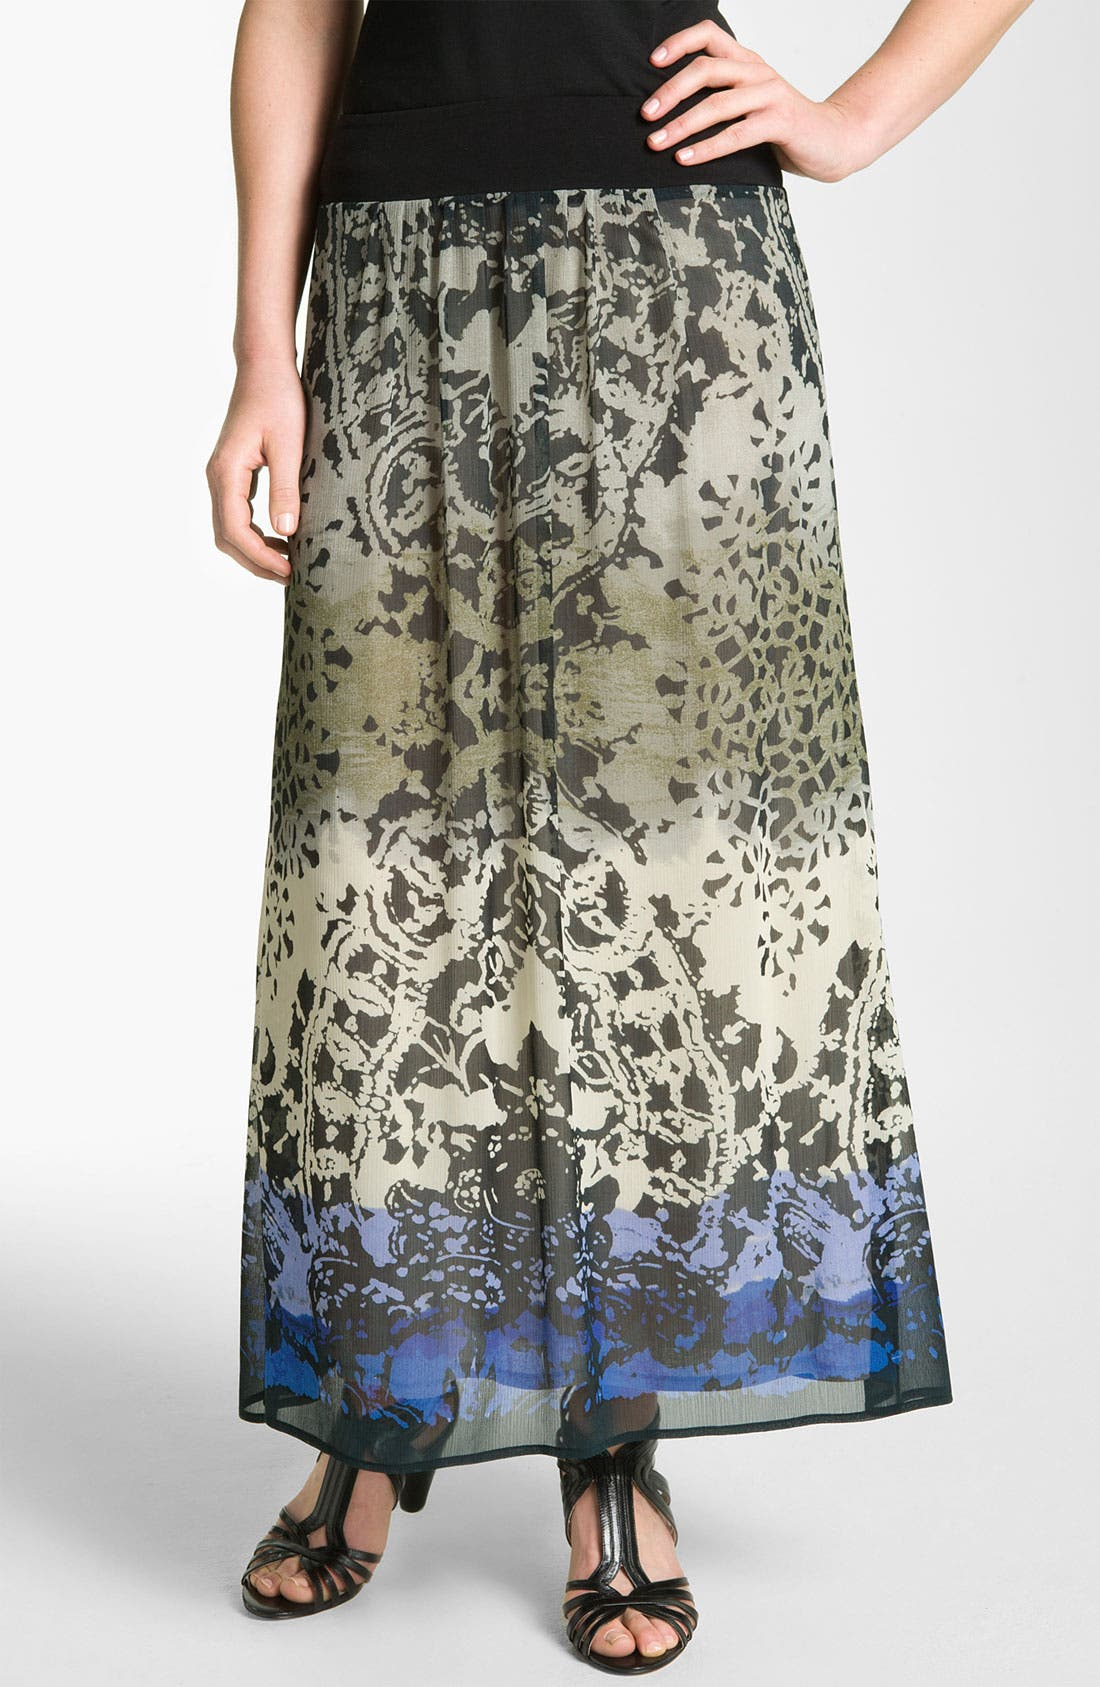 Alternate Image 1 Selected - Nic + Zoe Ombré Print Maxi Skirt